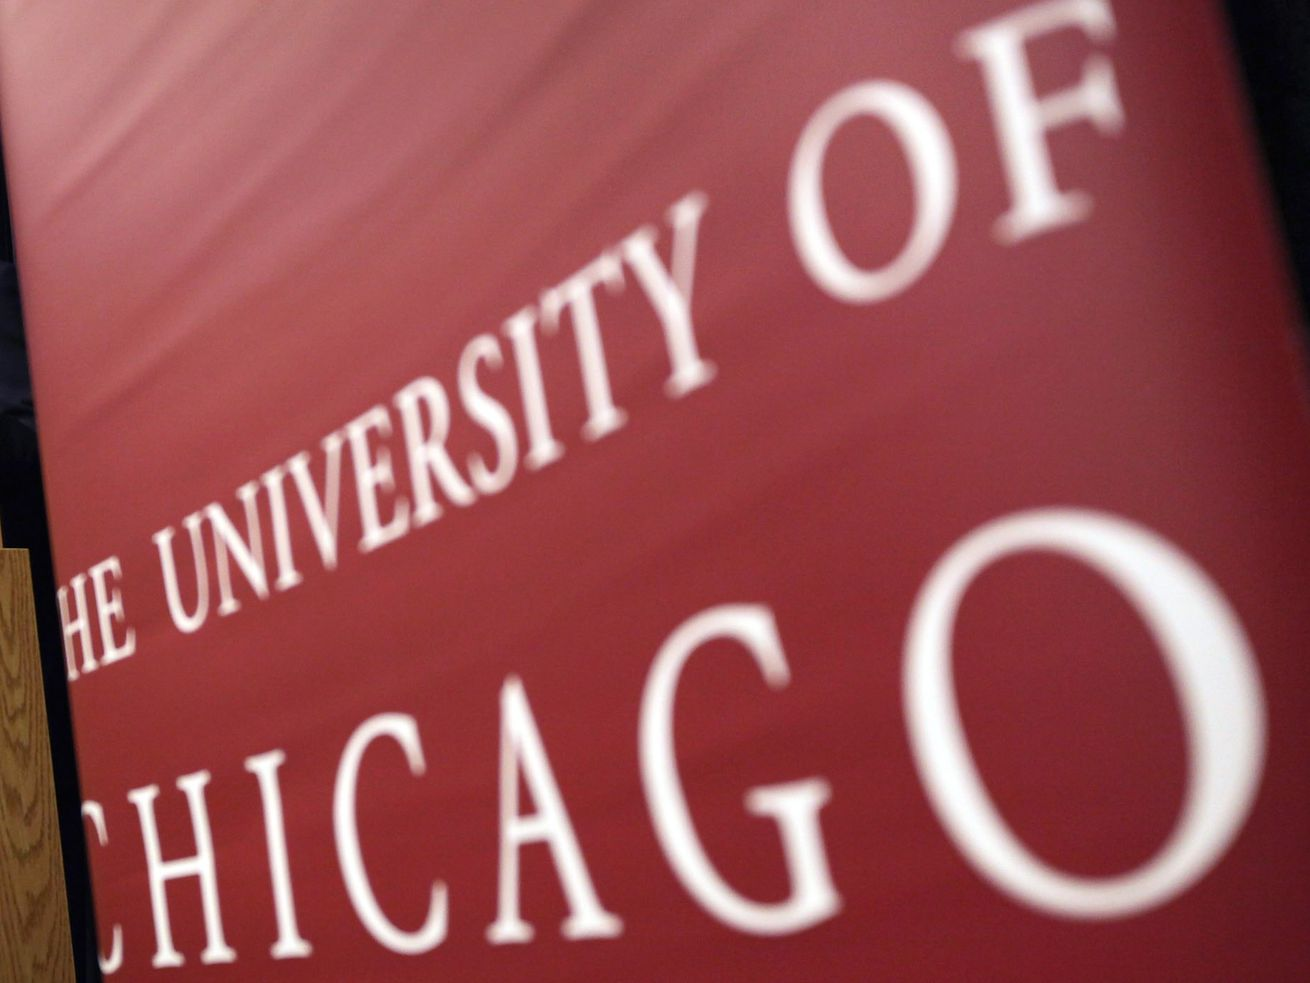 The University of Chicago said students must follow stay-at-home period following a COVID-19 outbreak.